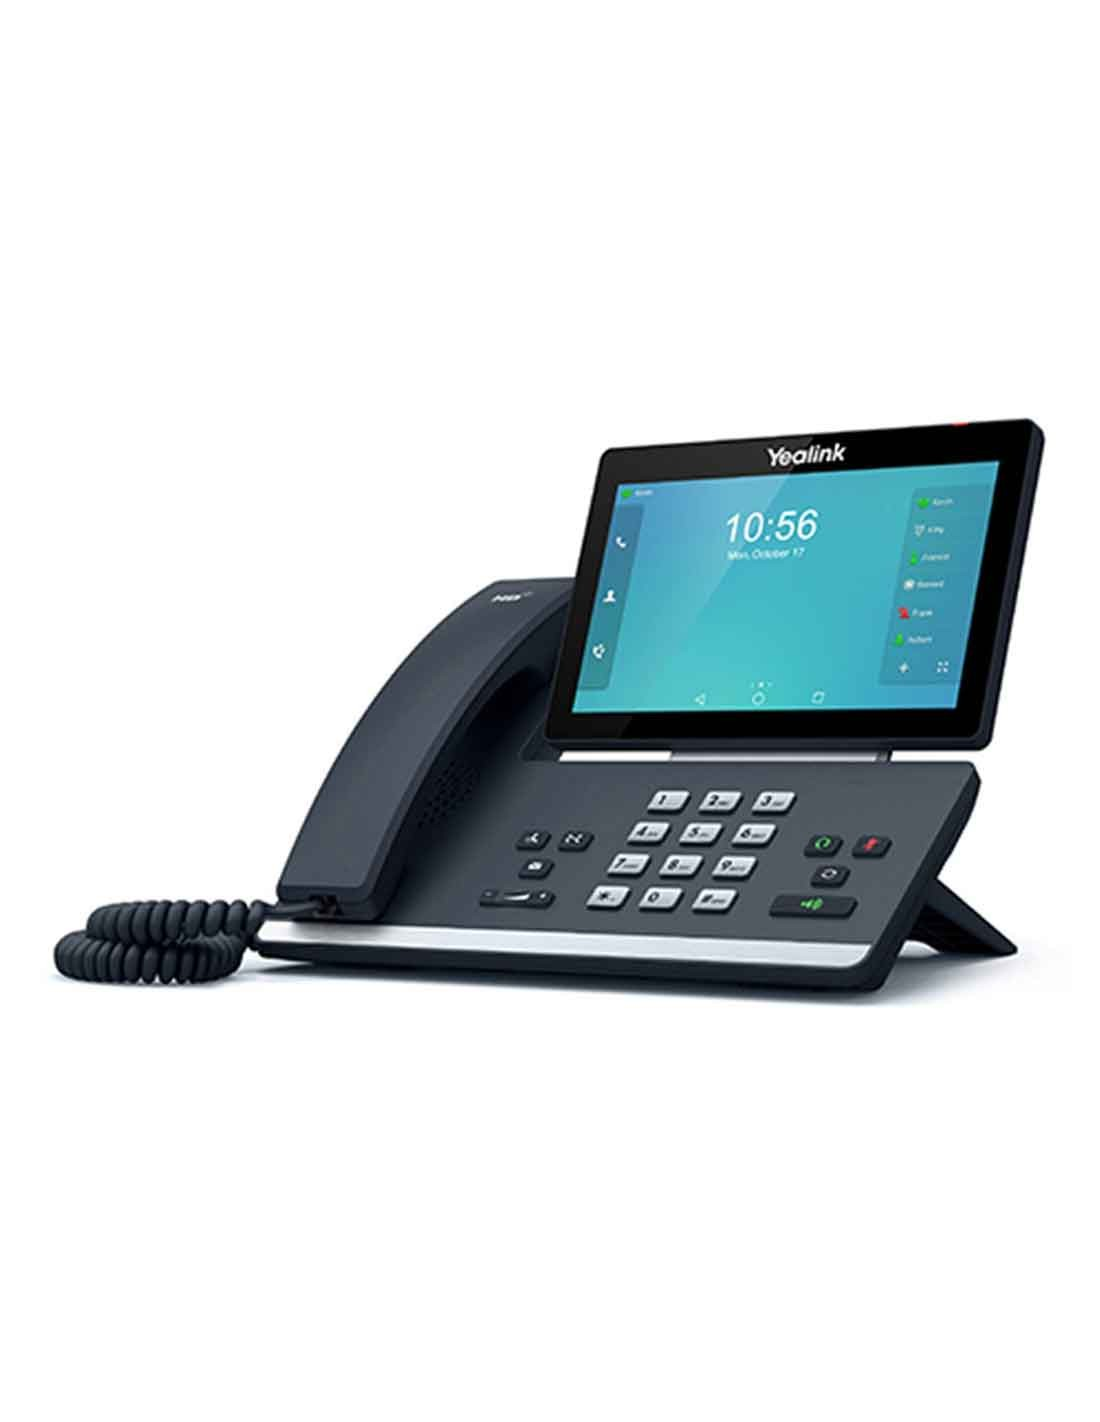 Yealink SIP-T58A IP Phone at a cheap price and free delivery in Dubai